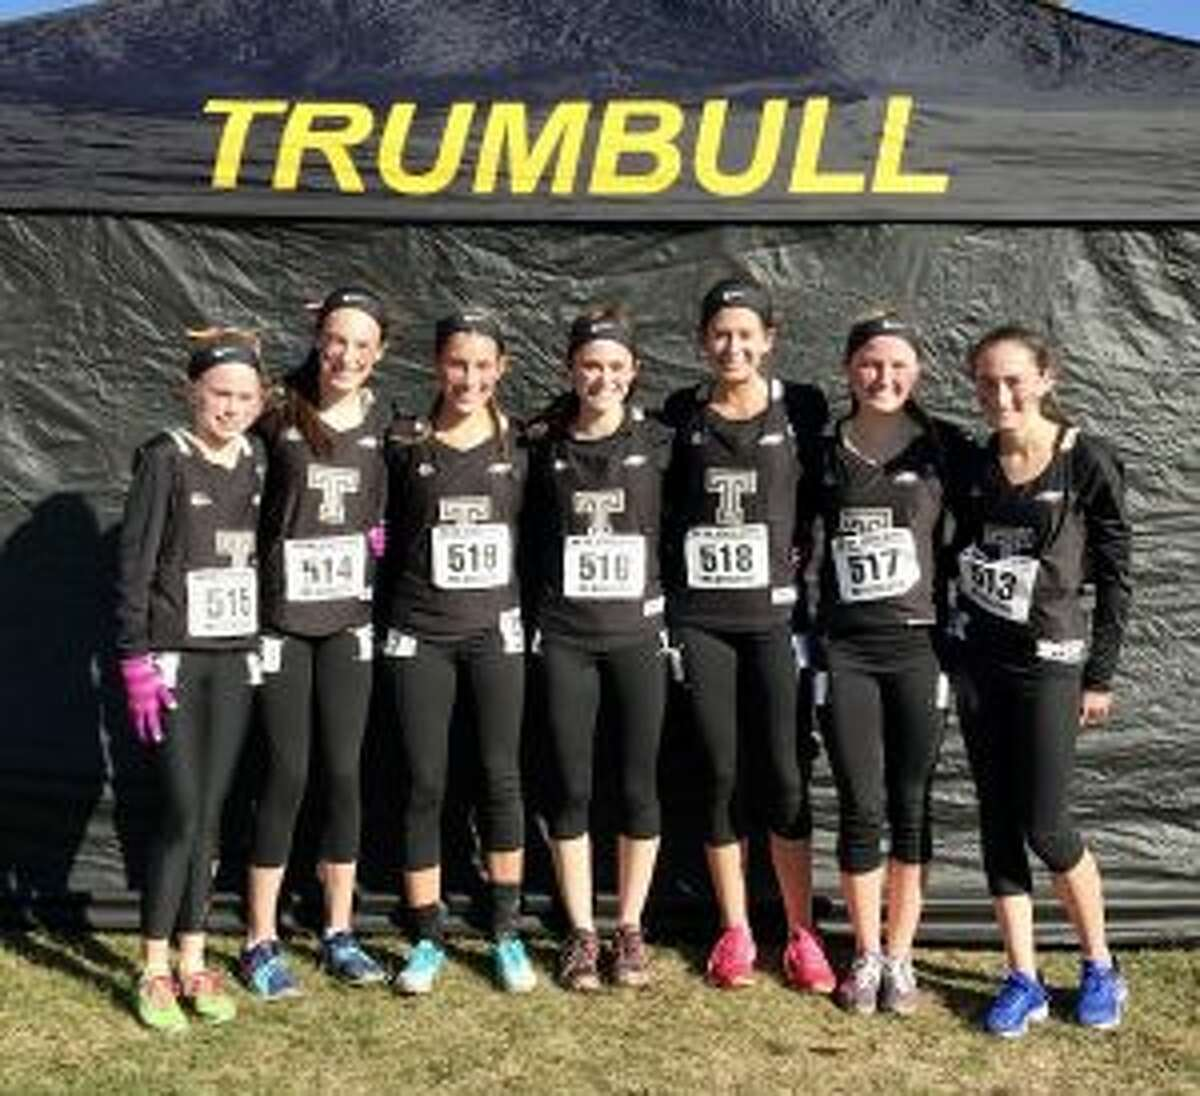 Trumbull finished with 408 points, just behind East Greenwich (R.I.), who had 405. Pinkerton (N.H.) won the meet with 163 points